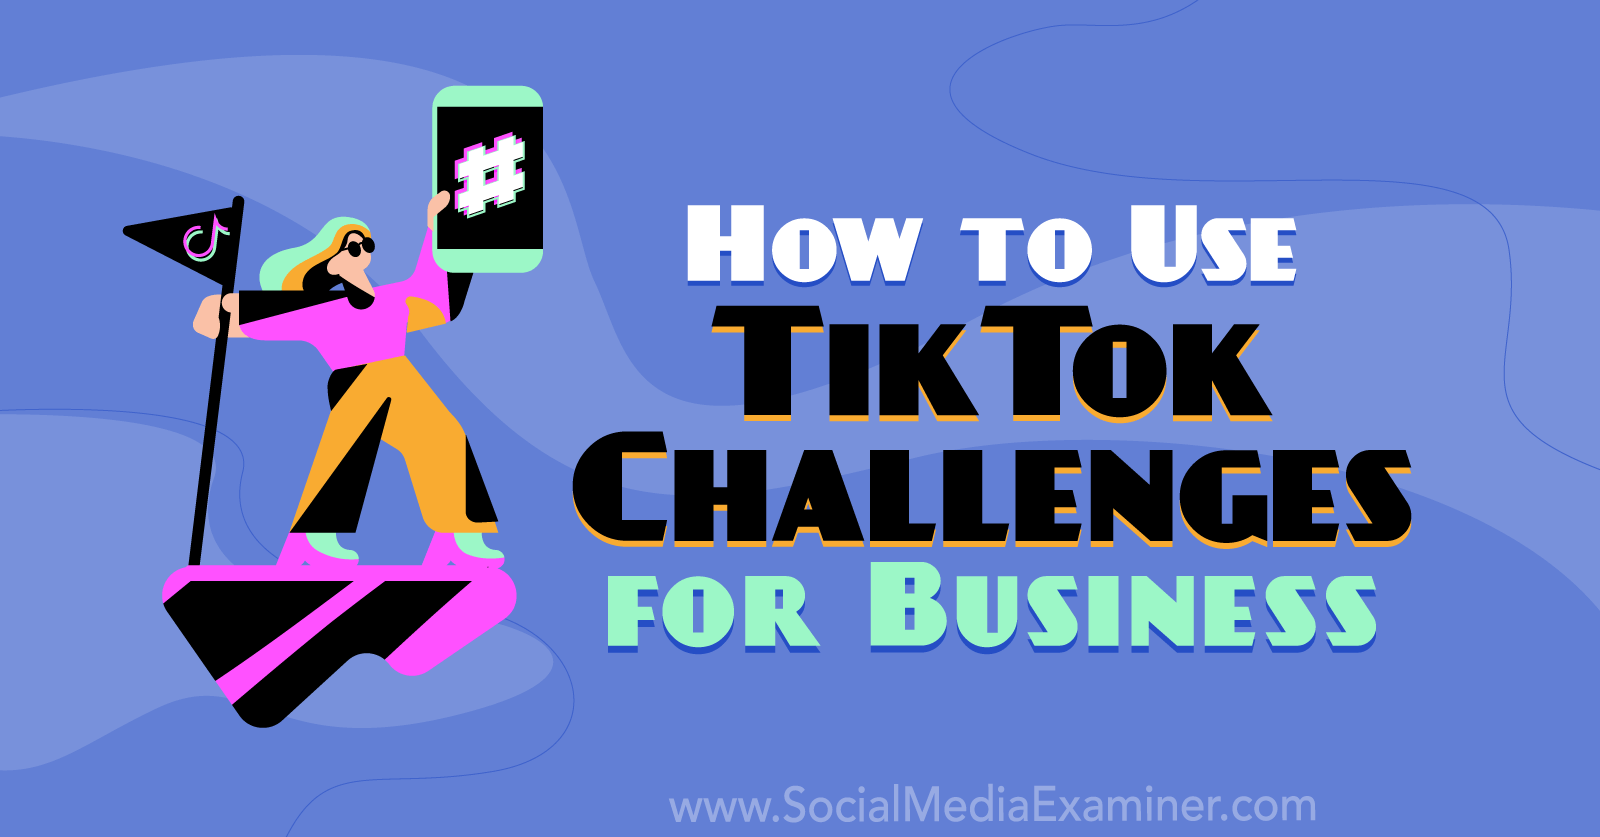 How To Use Tiktok Challenges For Business Social Media Examiner